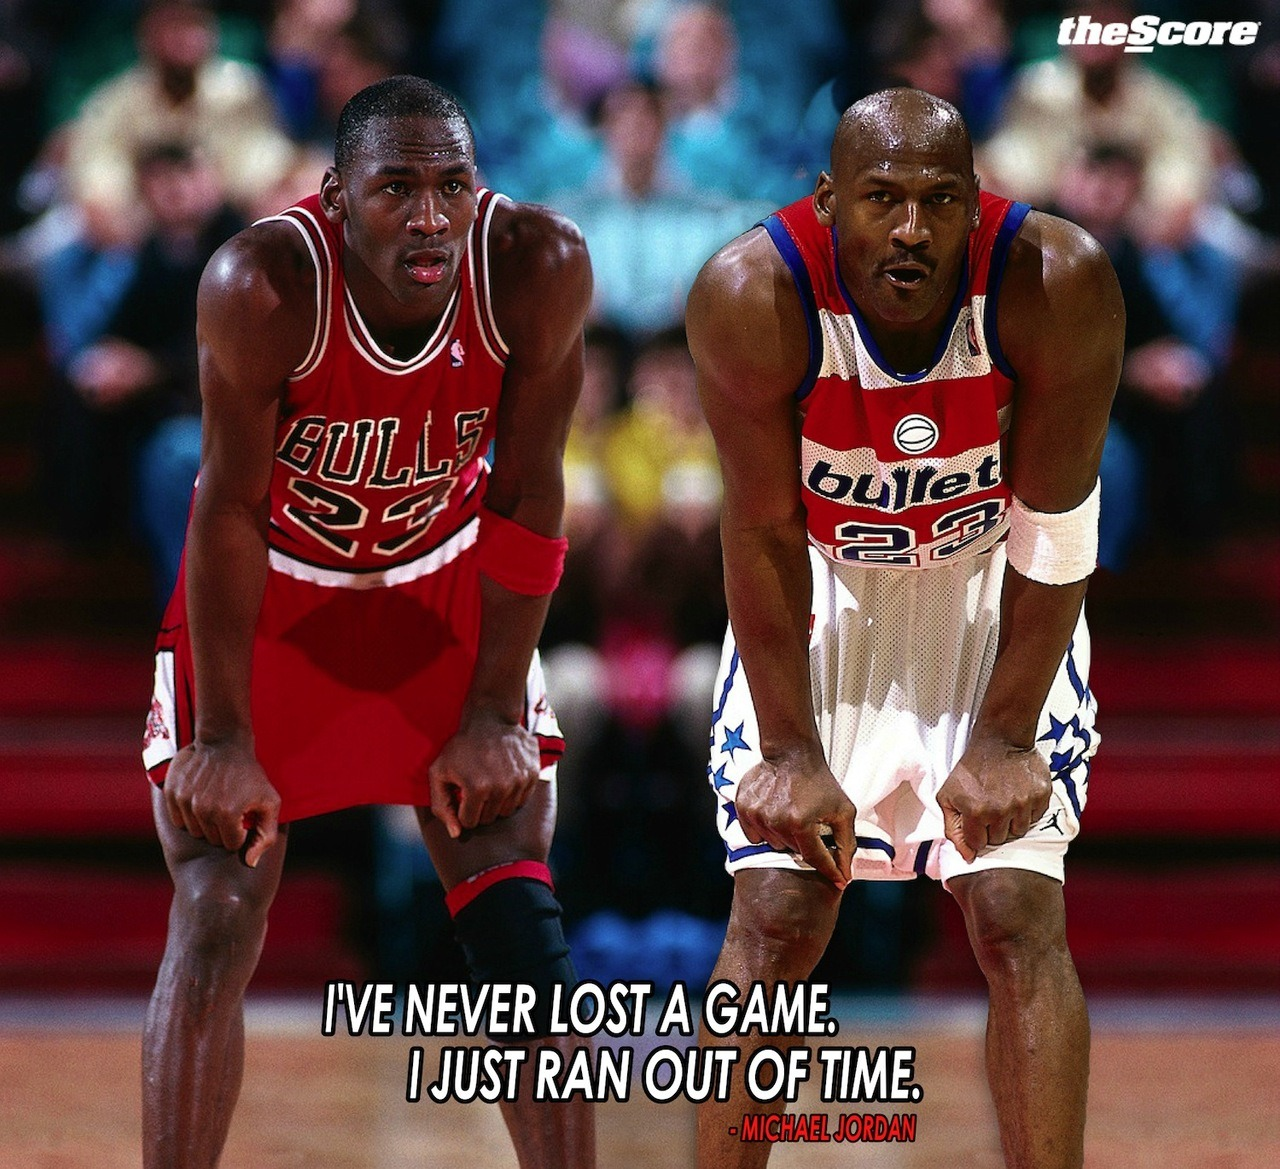 """I've never lost a game. I just ran out of time."" - M. Jordan"